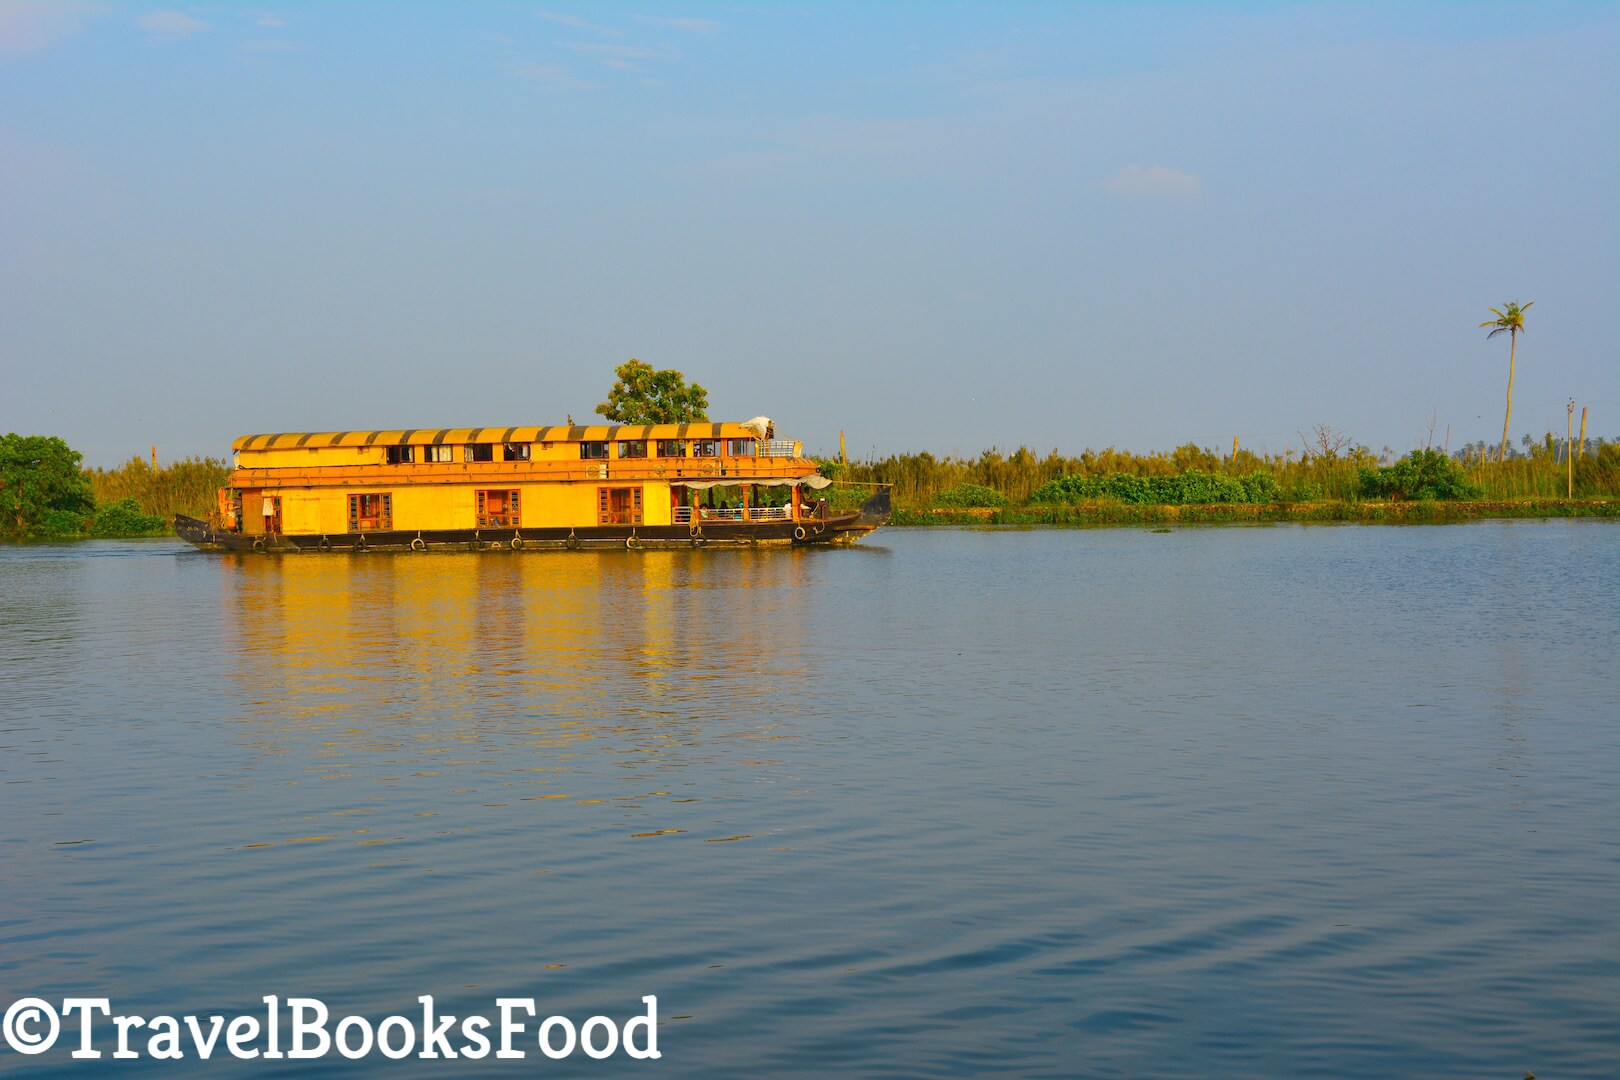 A picture of a houseboat taken in Kerala, India during sunset